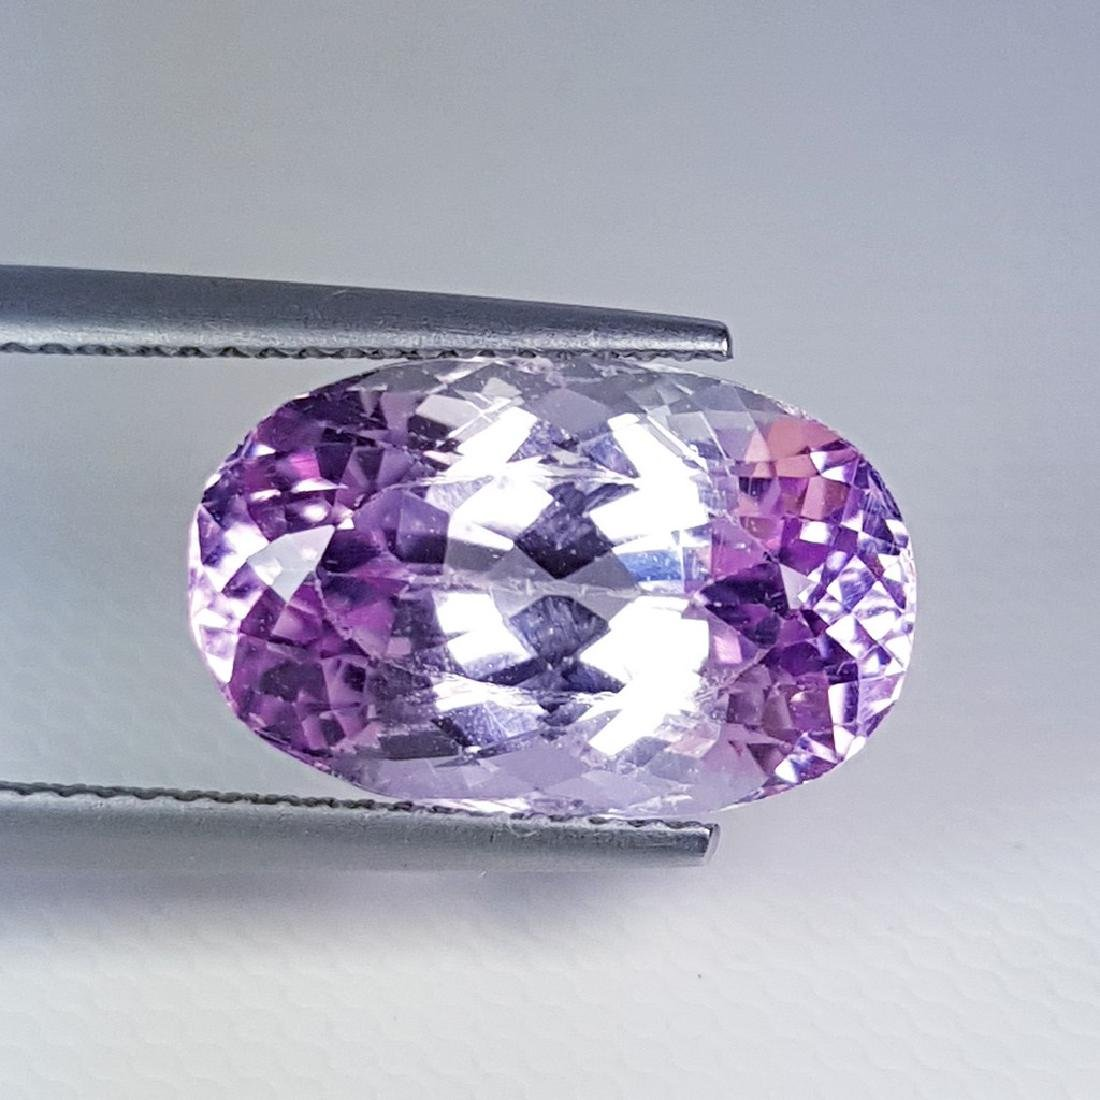 Lovely Gem Oval Cut Natural Pink Kunzite - 9.70 ct - 3